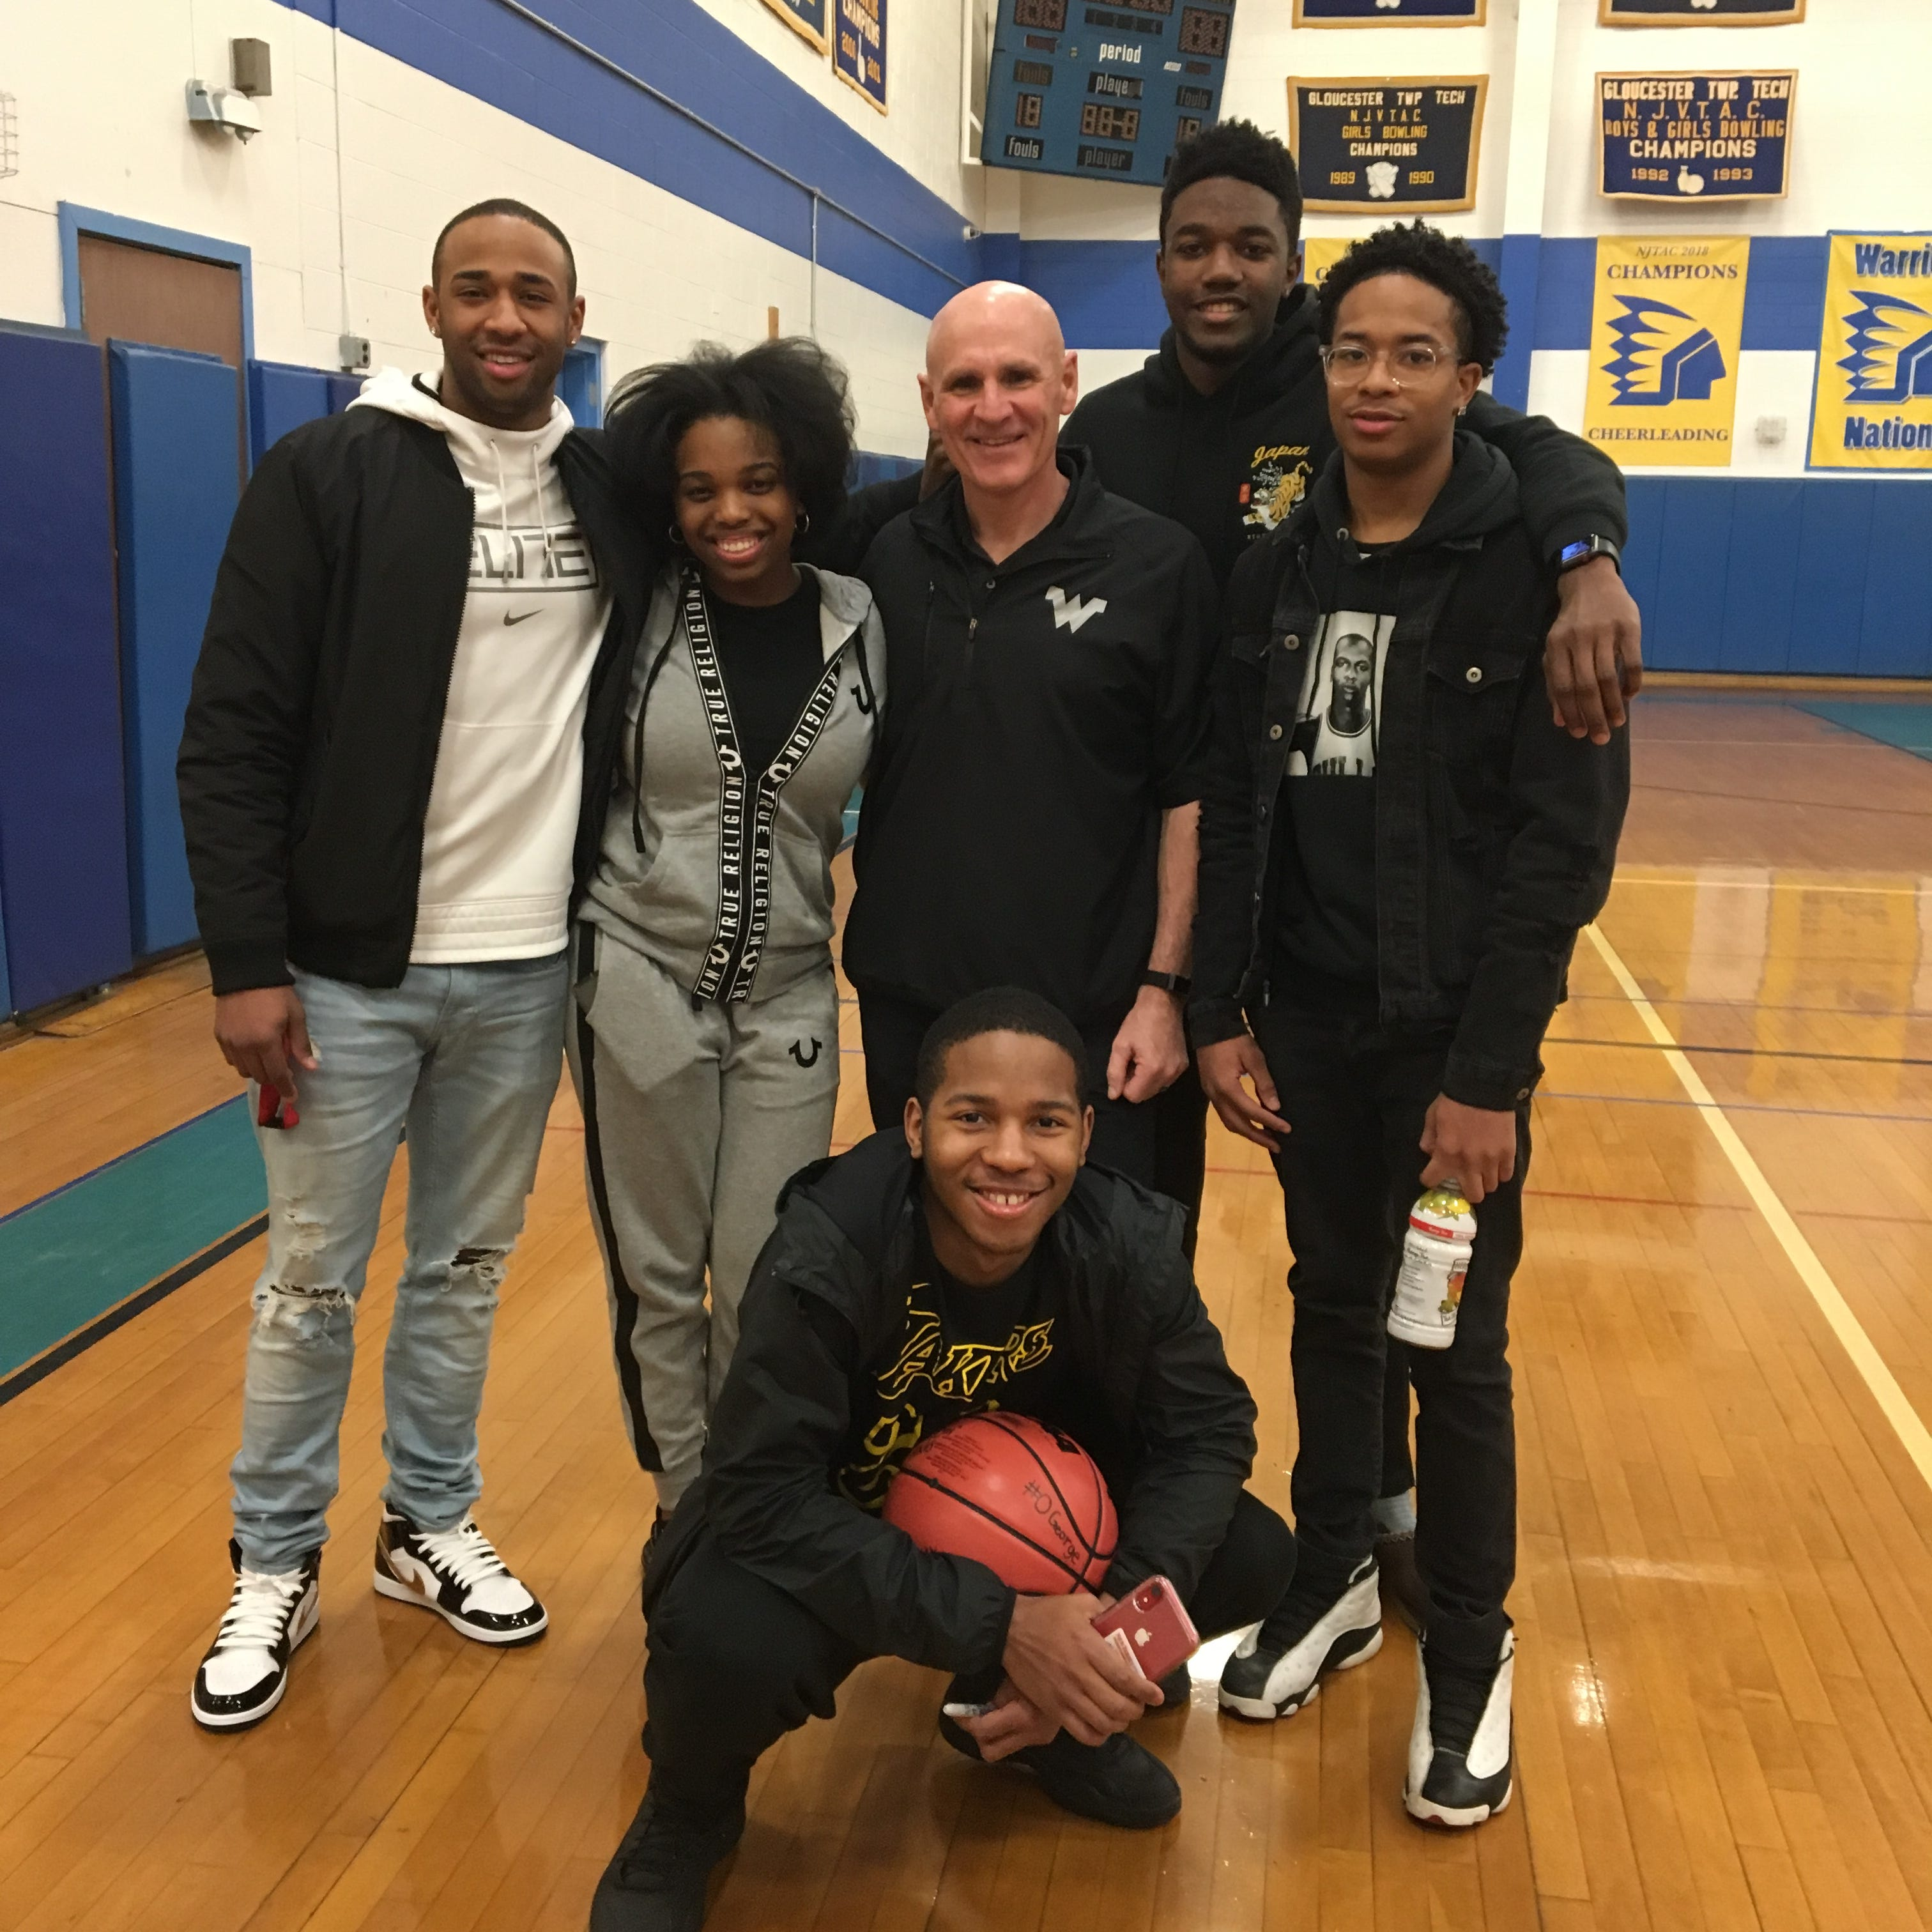 South Jersey basketball: Rob Sweeney retiring after 20 seasons with Camden Tech